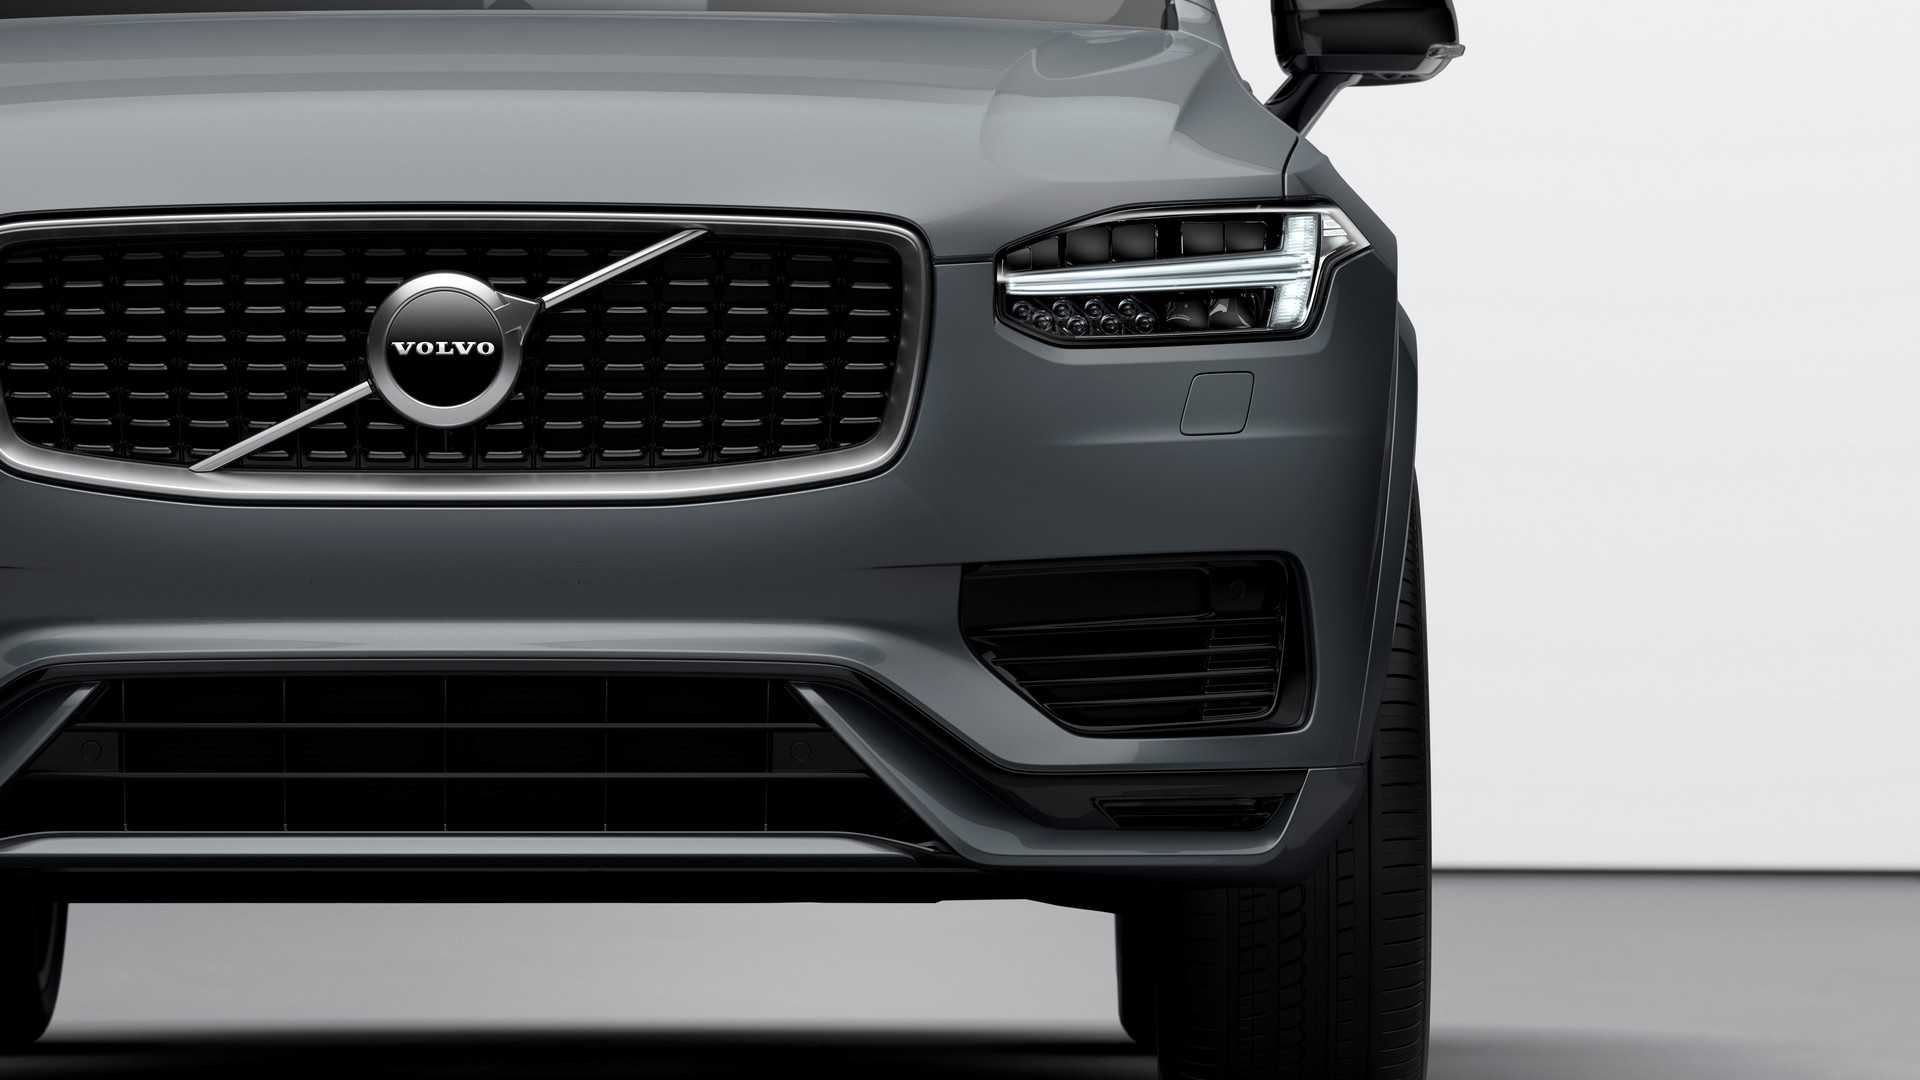 74 The Best Volvo Xc90 Facelift 2019 Picture